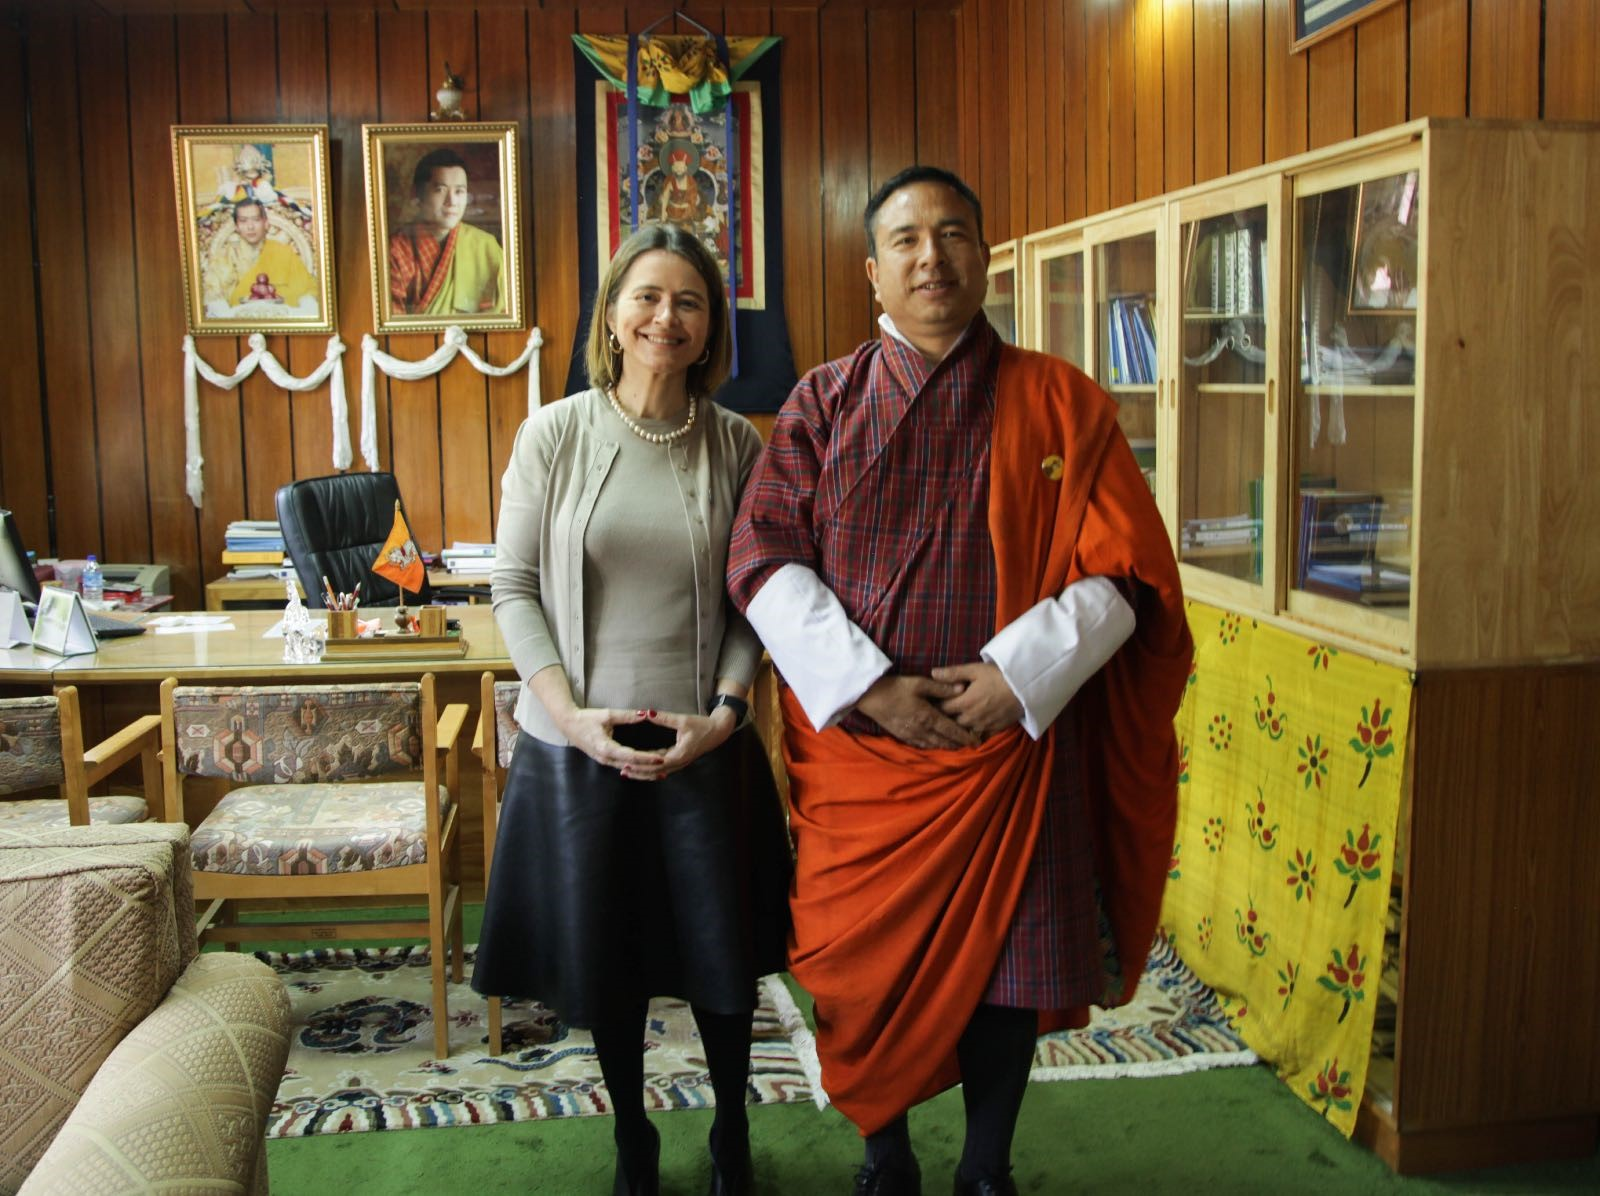 Mrs. de Albuquerque with His Excellency Lyonpo Namgay Dorji, Minister of Finance